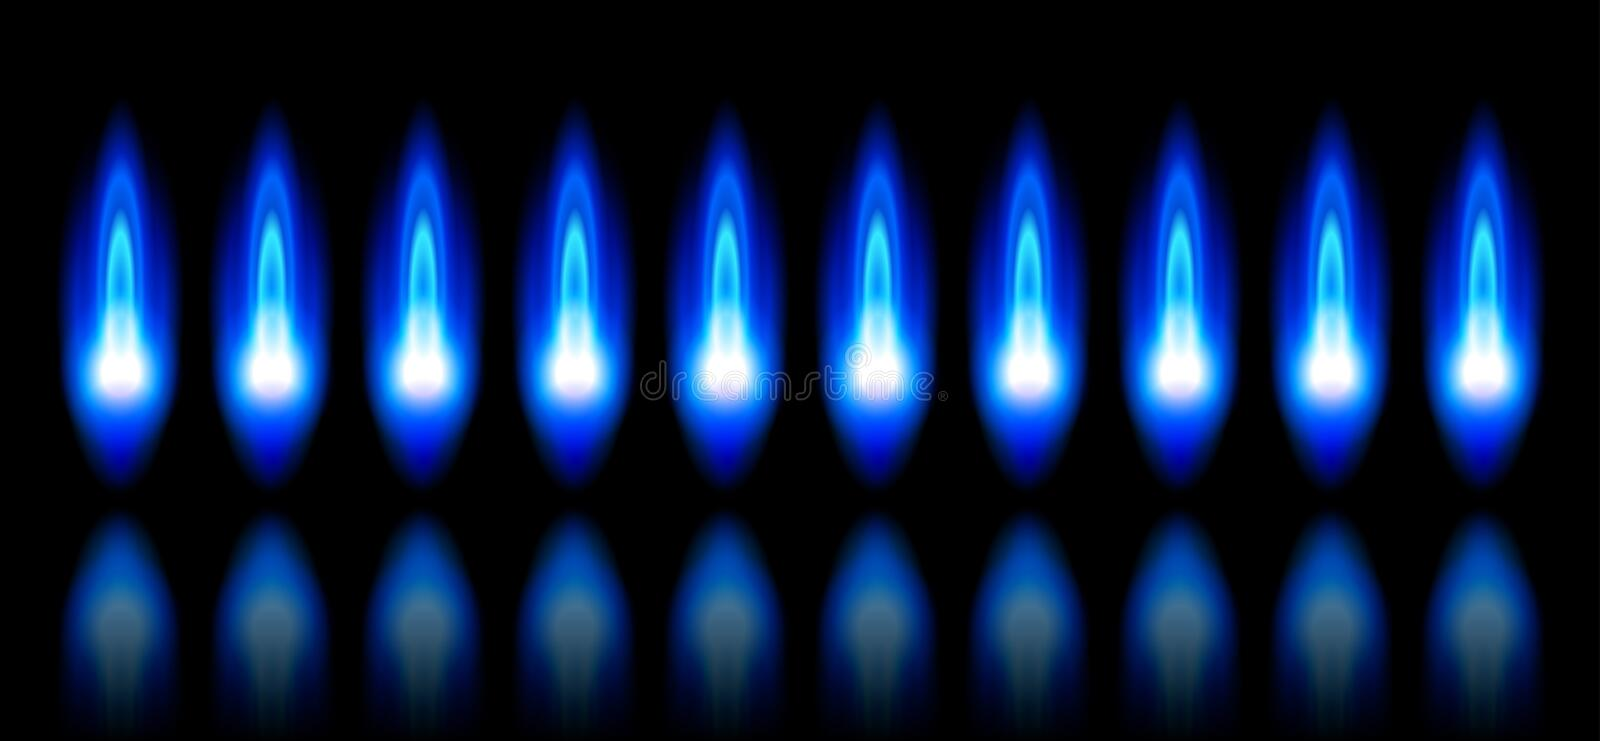 Fiamme blu di un gas naturale burning illustrazione di stock